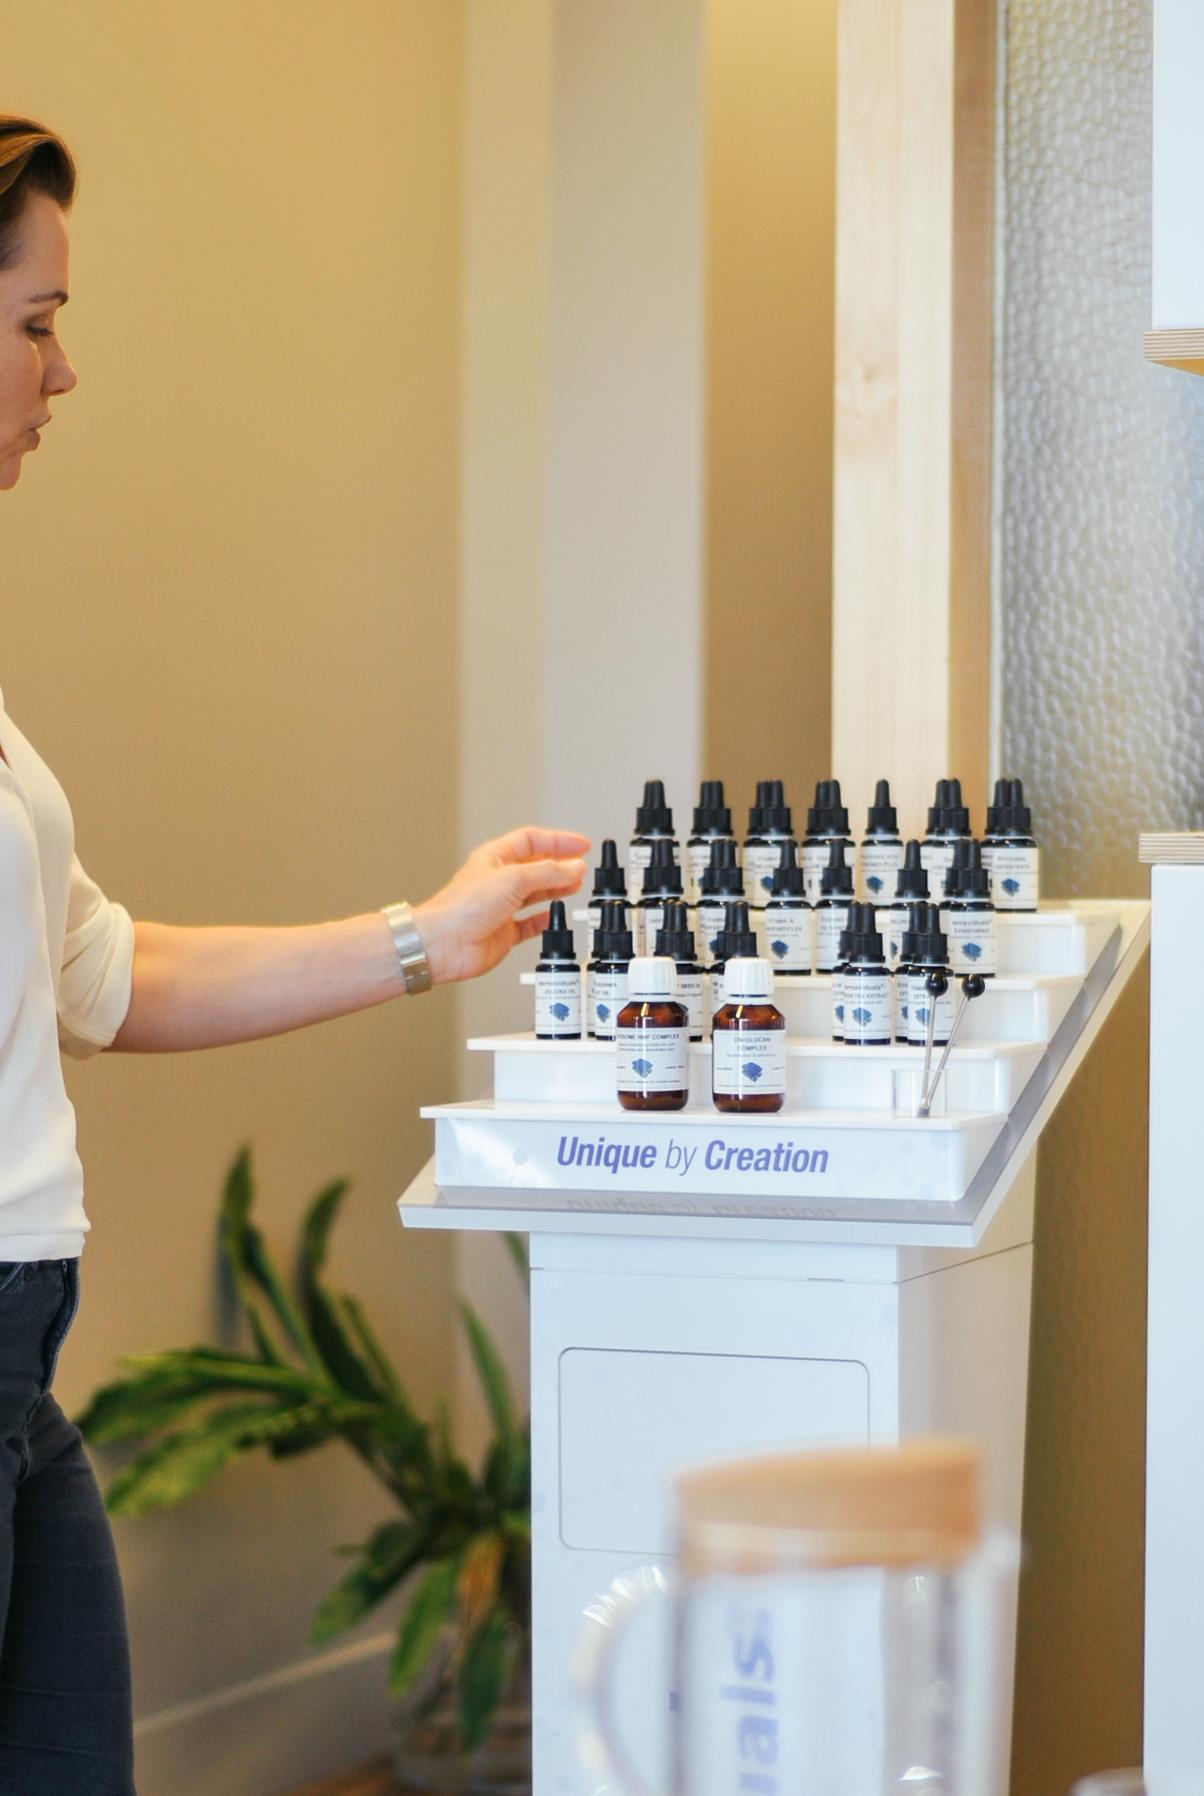 Our dermaviduals blending bar means we can create skincare unique for your skin's needs.